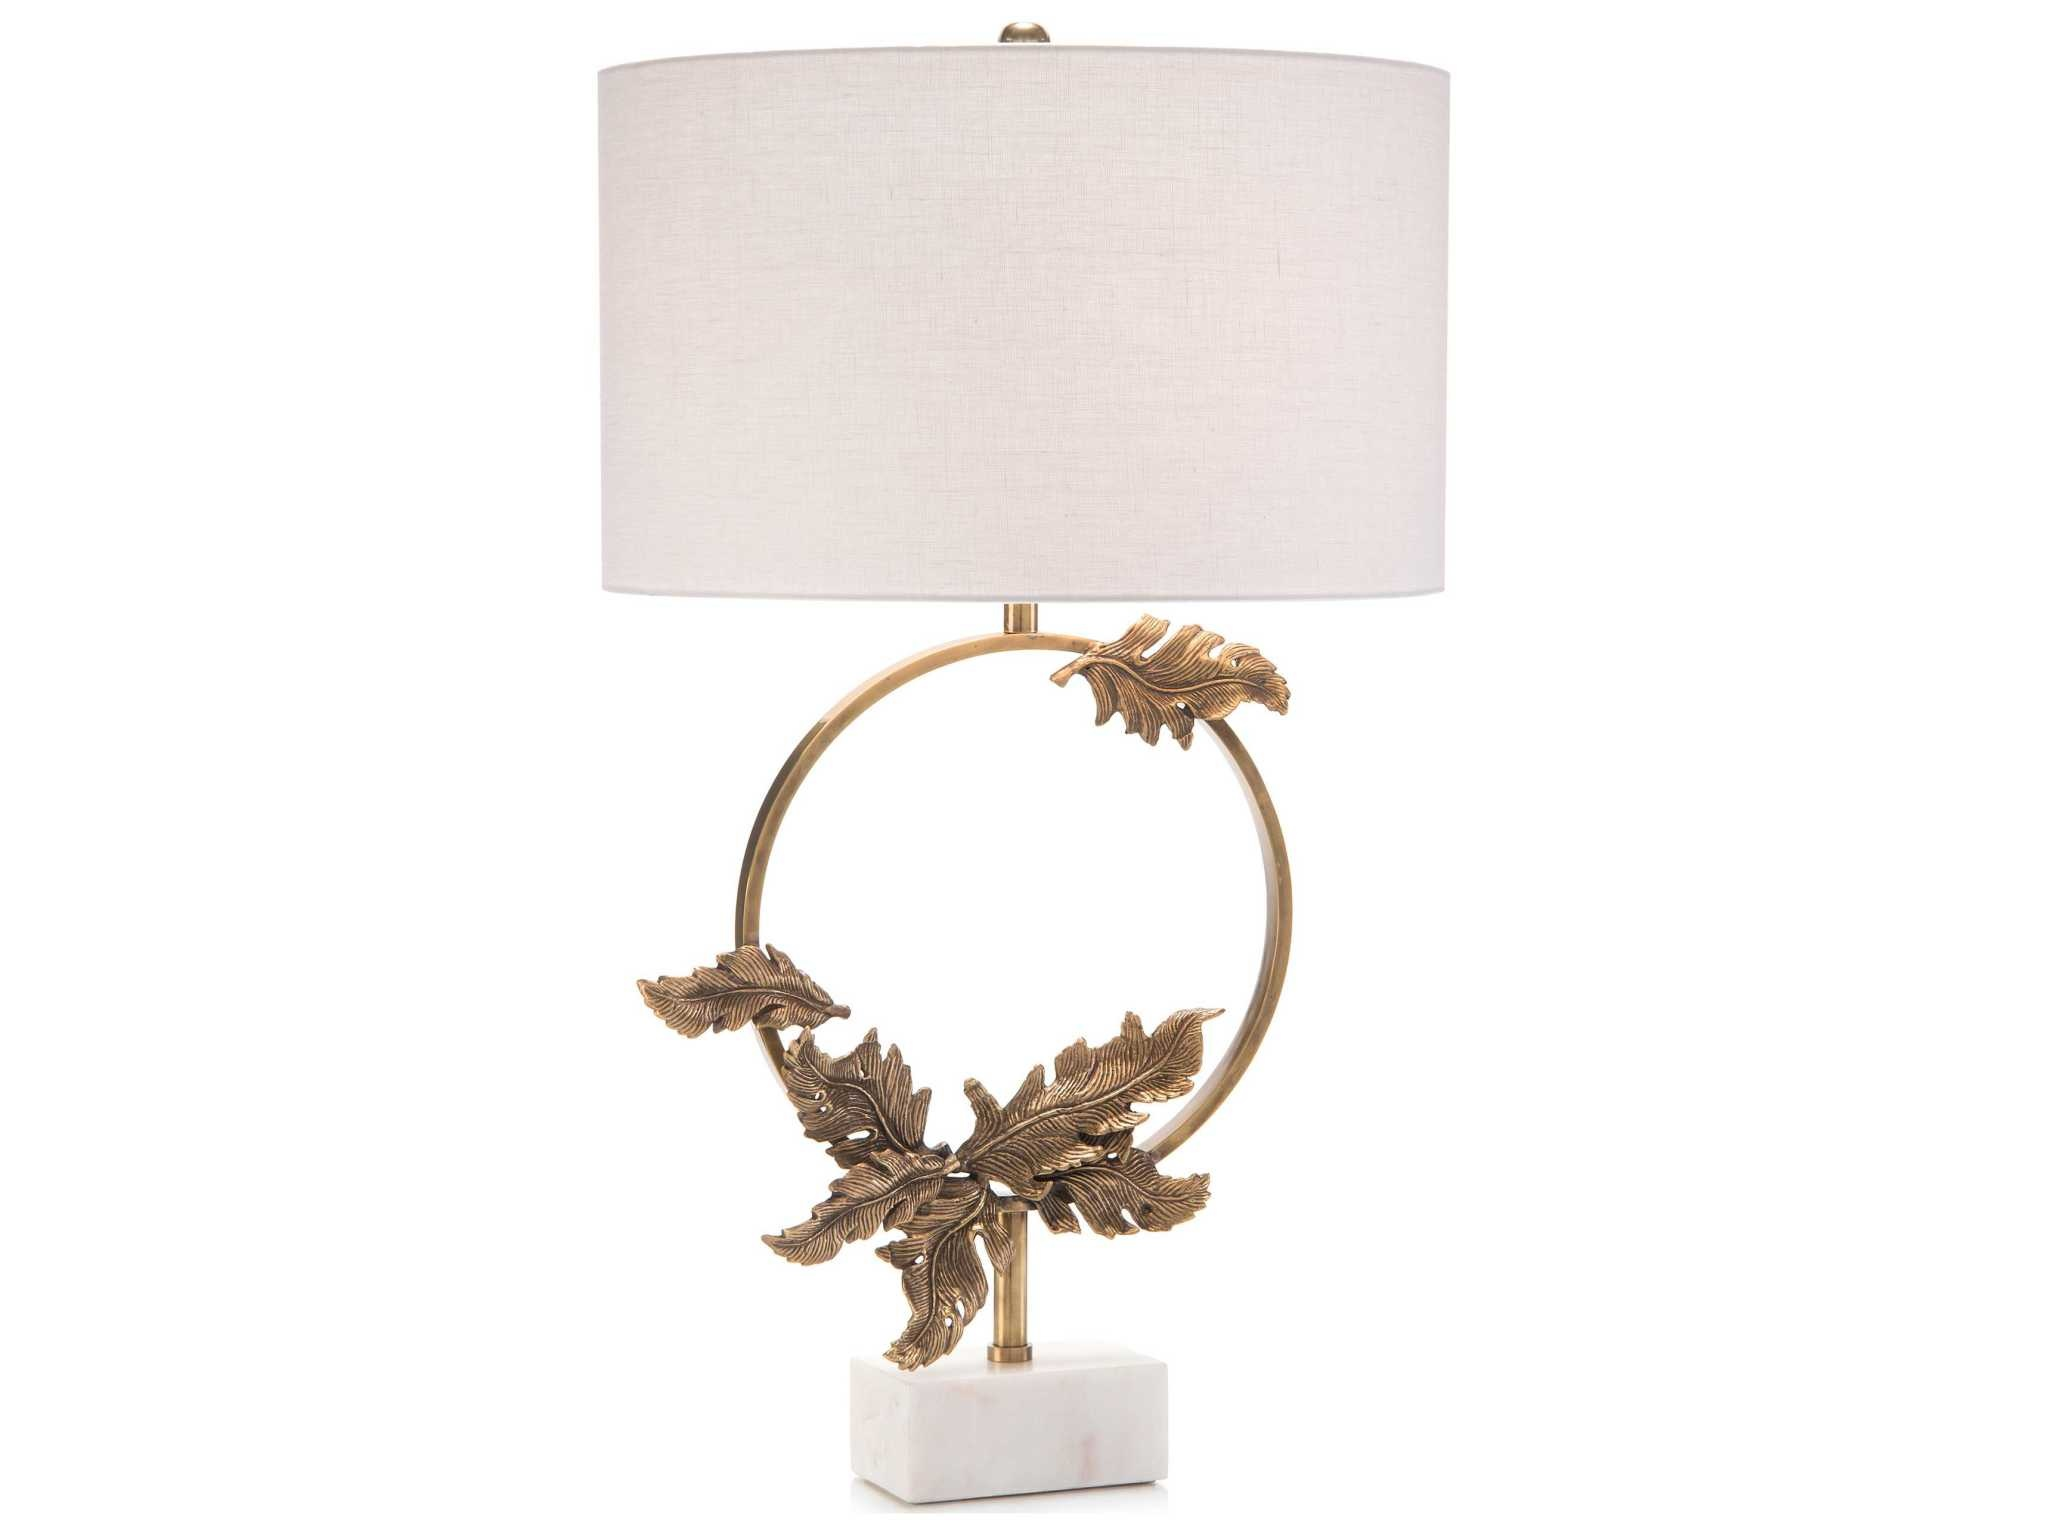 John Richard Brass Wreath table Lamp